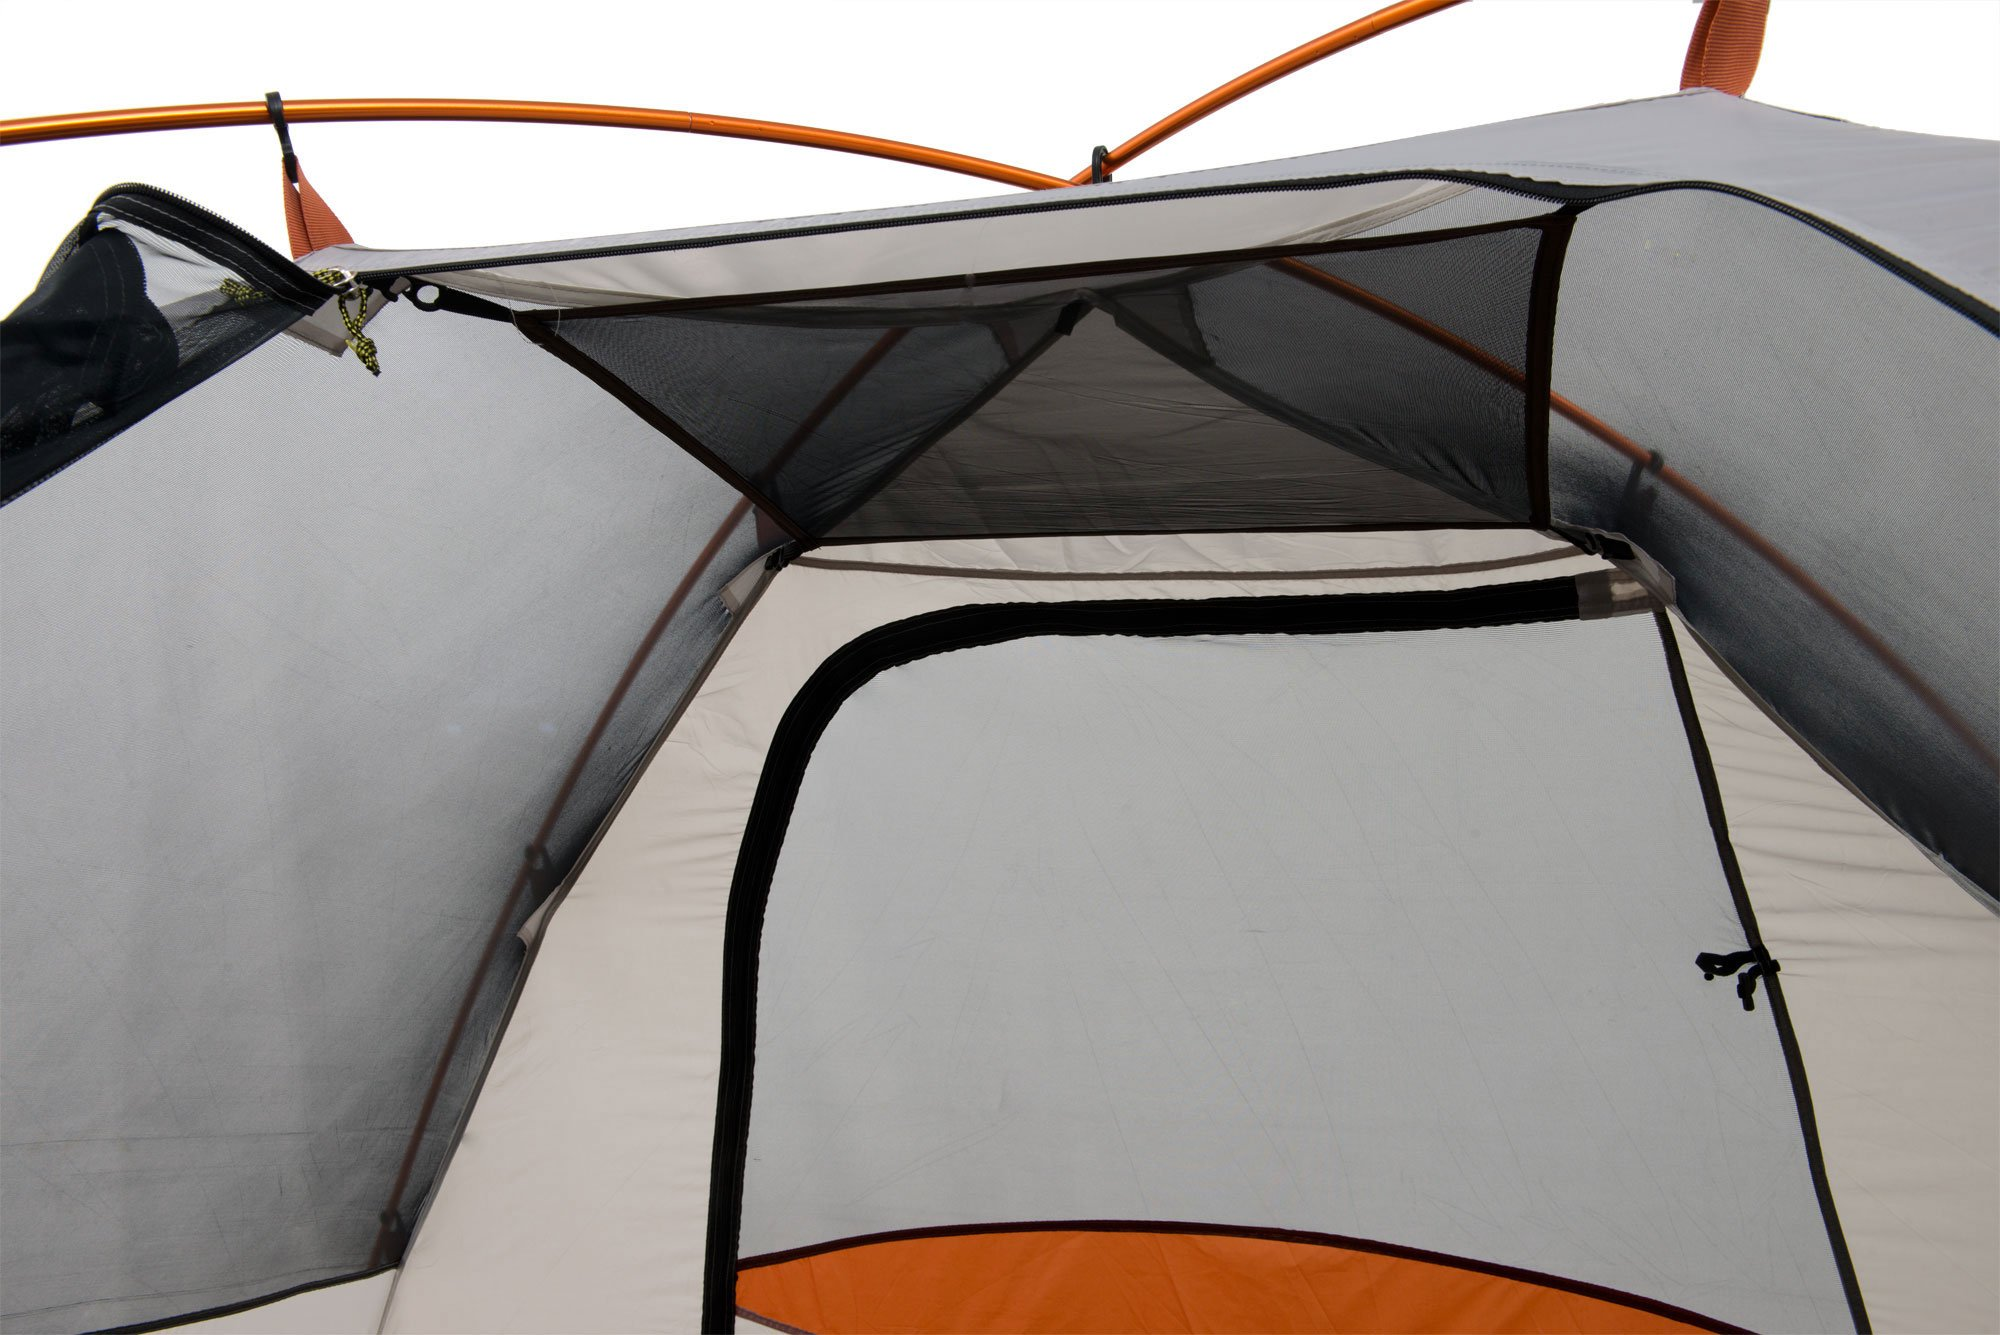 ALPS Mountaineering Lynx 4-Person Tent, Clay/Rust by ALPS Mountaineering (Image #5)